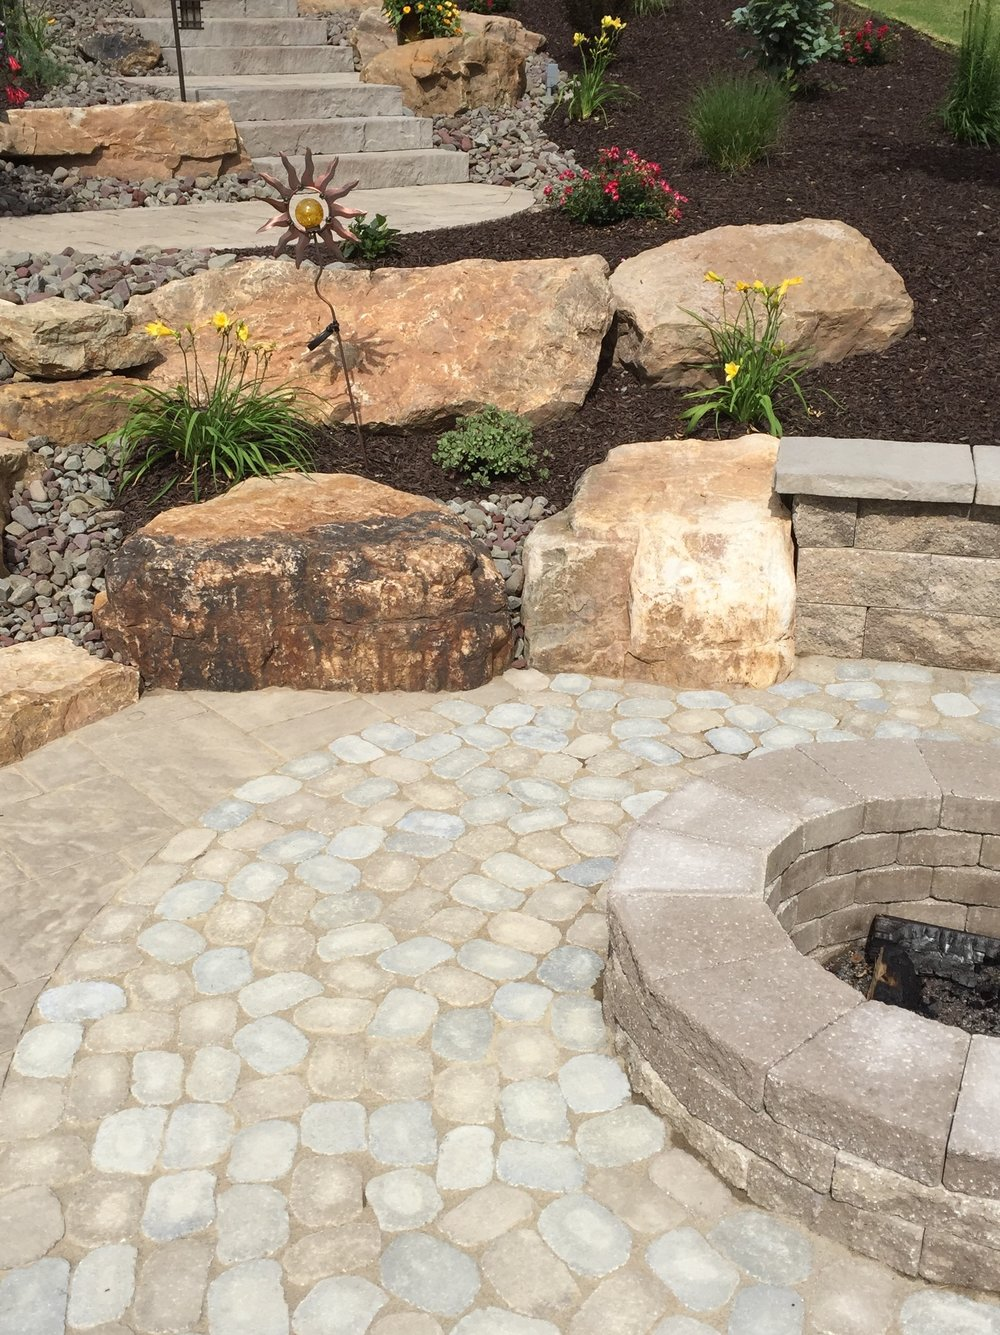 Professional landscape design with a fire pit in Berks County, PA